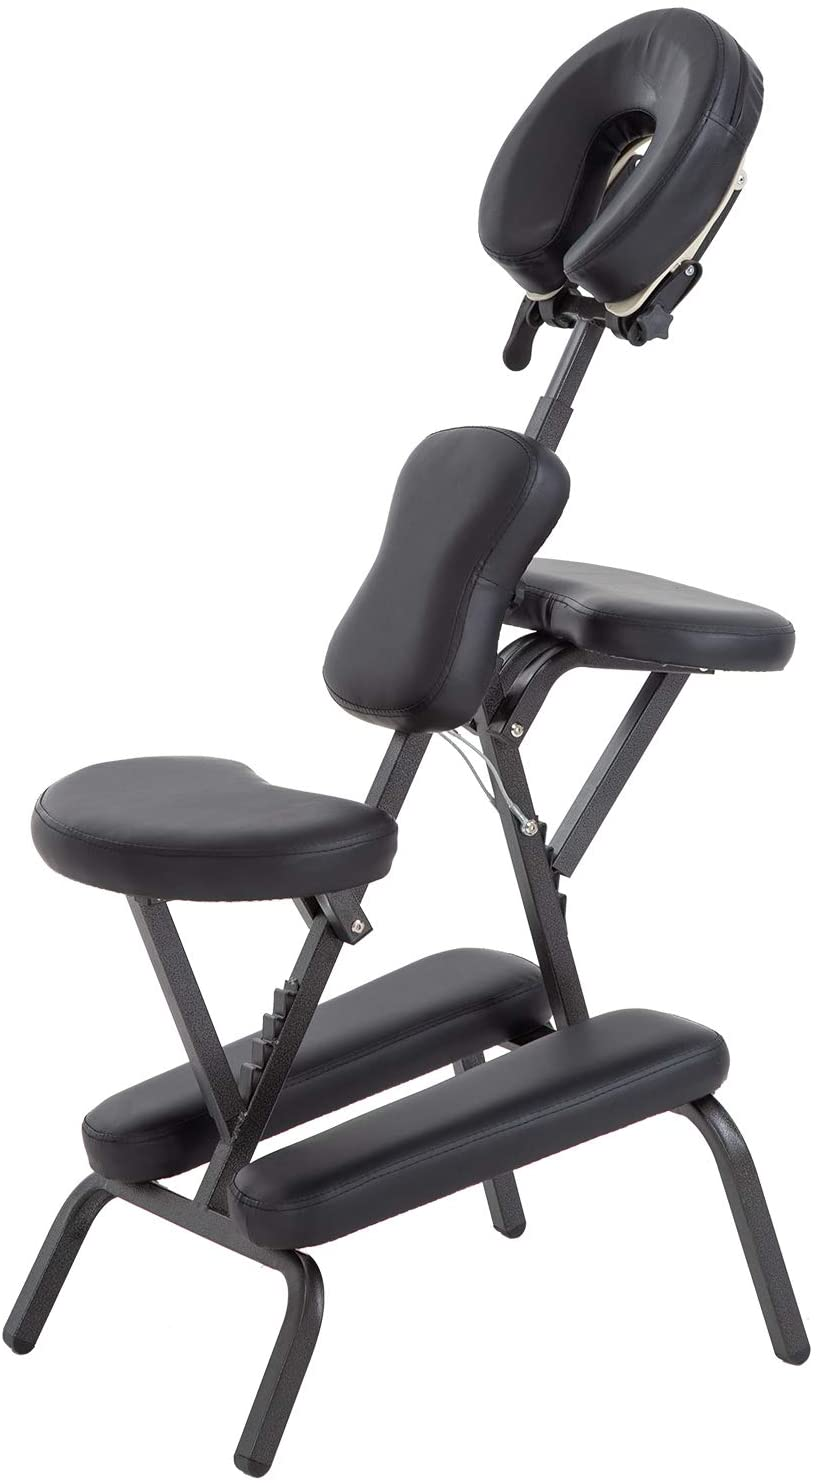 Massage Chair Portable Tattoo Chair Folding Height Adjustable 2 Inch Thick Sponge Light Weight Therapy Chairs Carring Bag Face Cradle Travel Spa Chairs (Black)